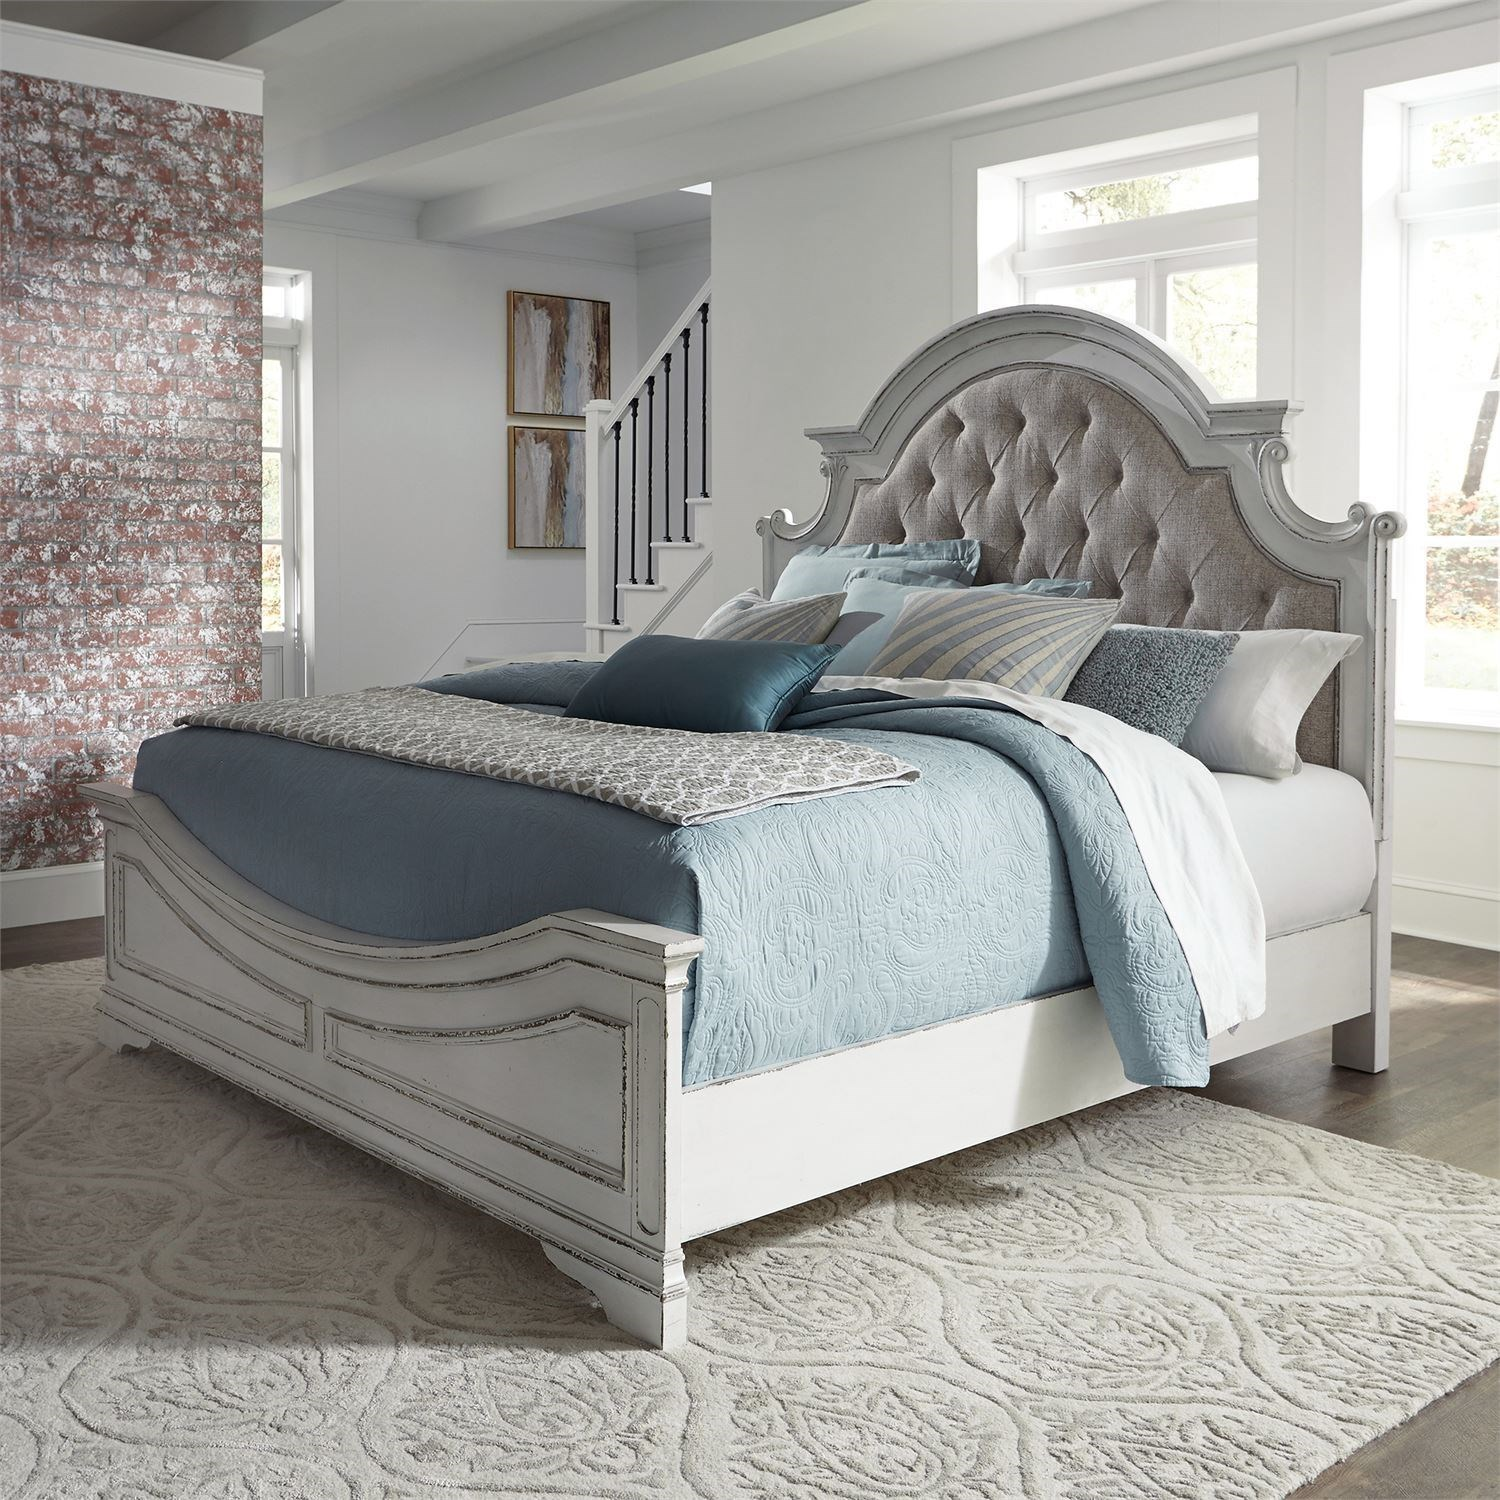 Magnolia Manor Queen Upholstered Bed by Liberty Furniture at Darvin Furniture